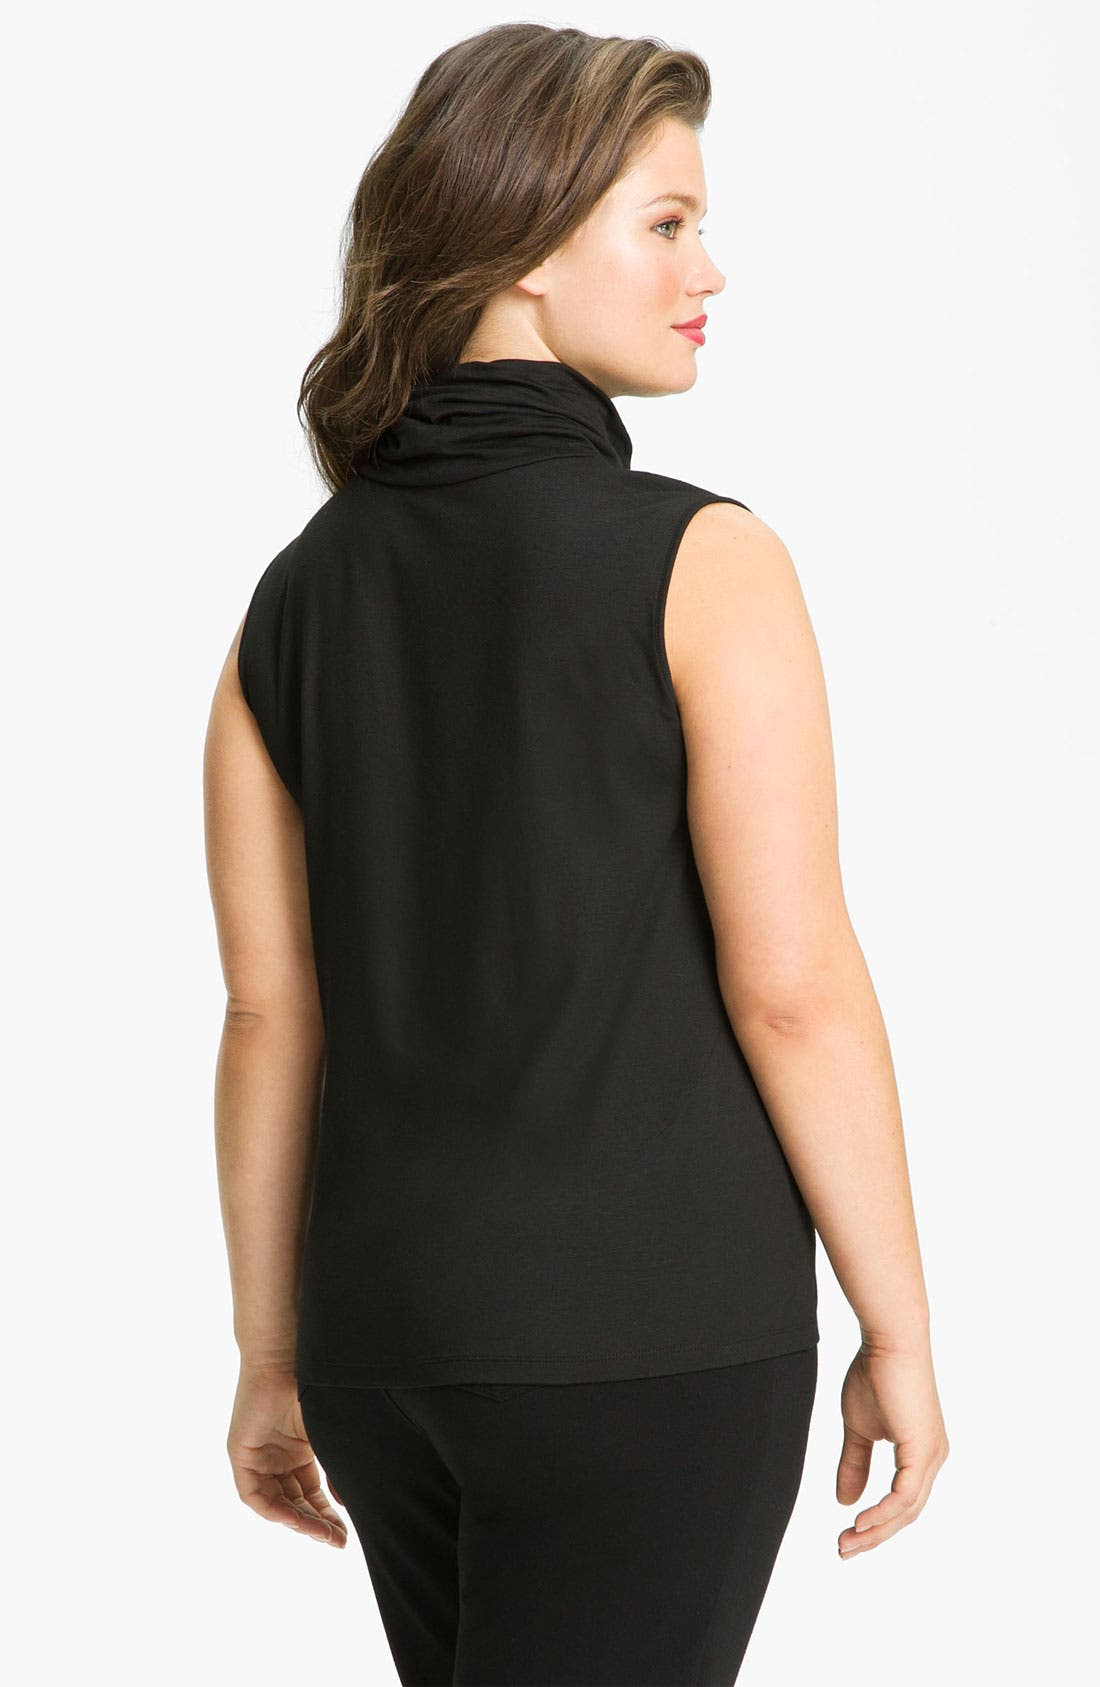 Alternate Image 2  - Lafayette 148 New York 'Nouveau' Sleeveless Turtleneck Top (Plus)